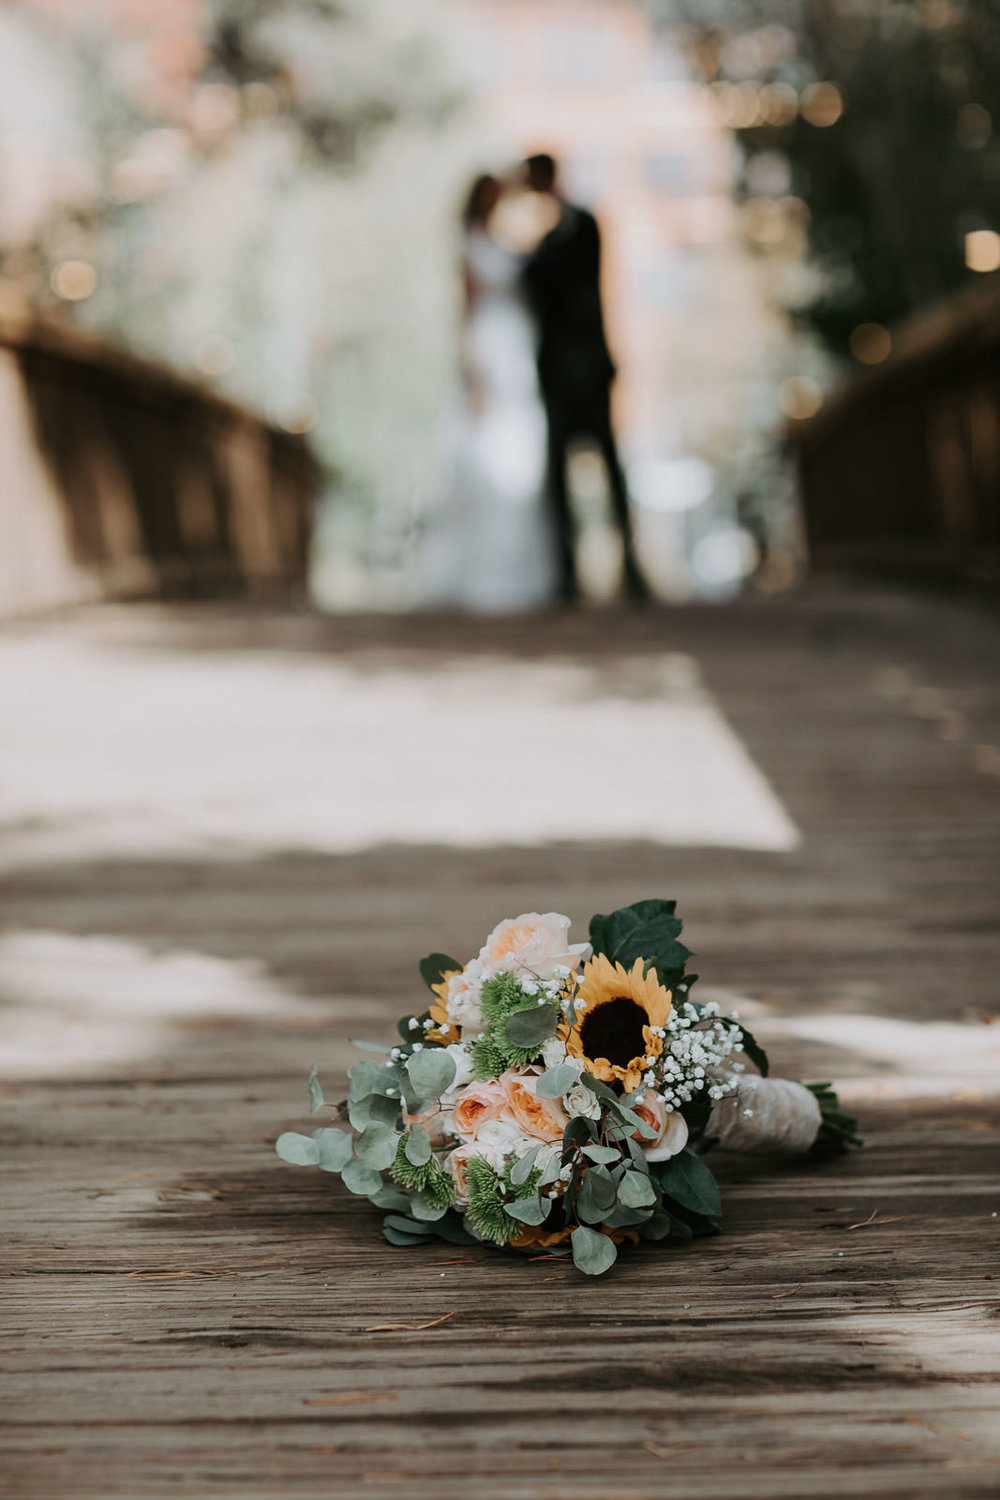 Quaking Aspen Amphitheater wedding fall colors Keystone Colorado bouquet